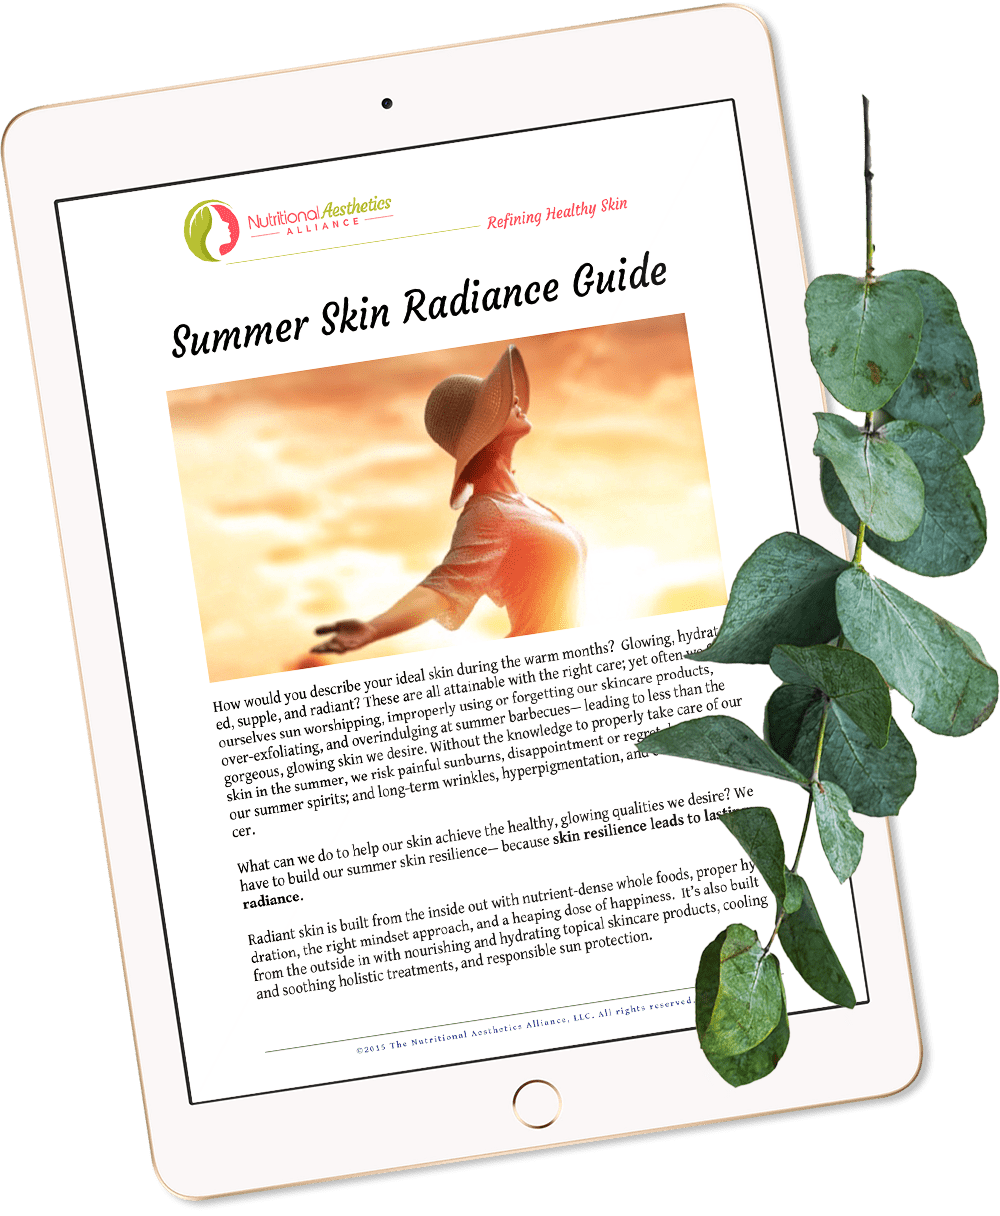 Summer Skin Radiance Guide on iPad